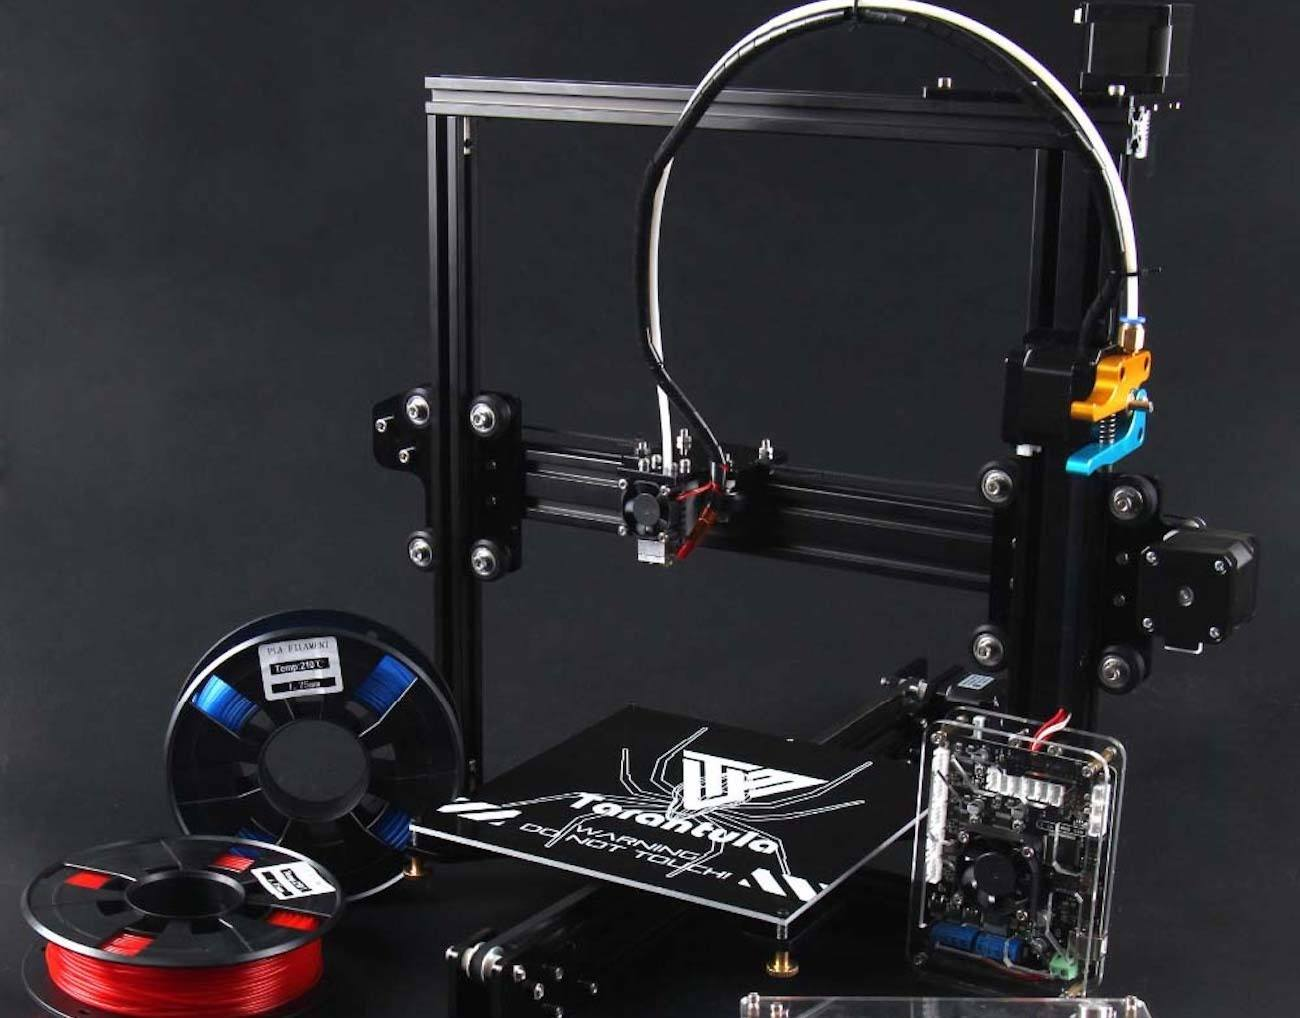 TEVO Tarantula I3 3D Printer Kit Review » The Gadget Flow